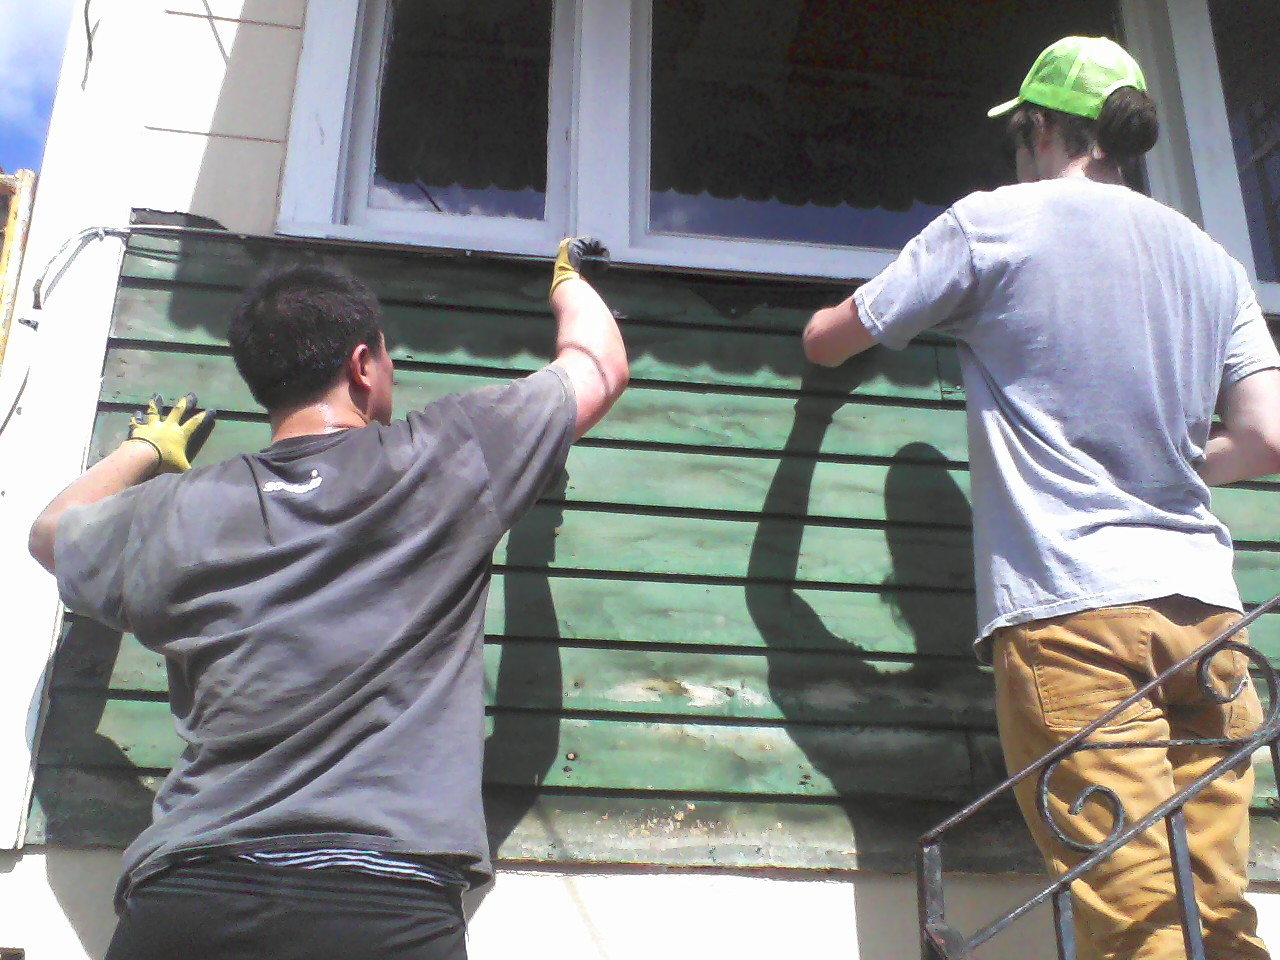 Shawn and Griff remove old siding.